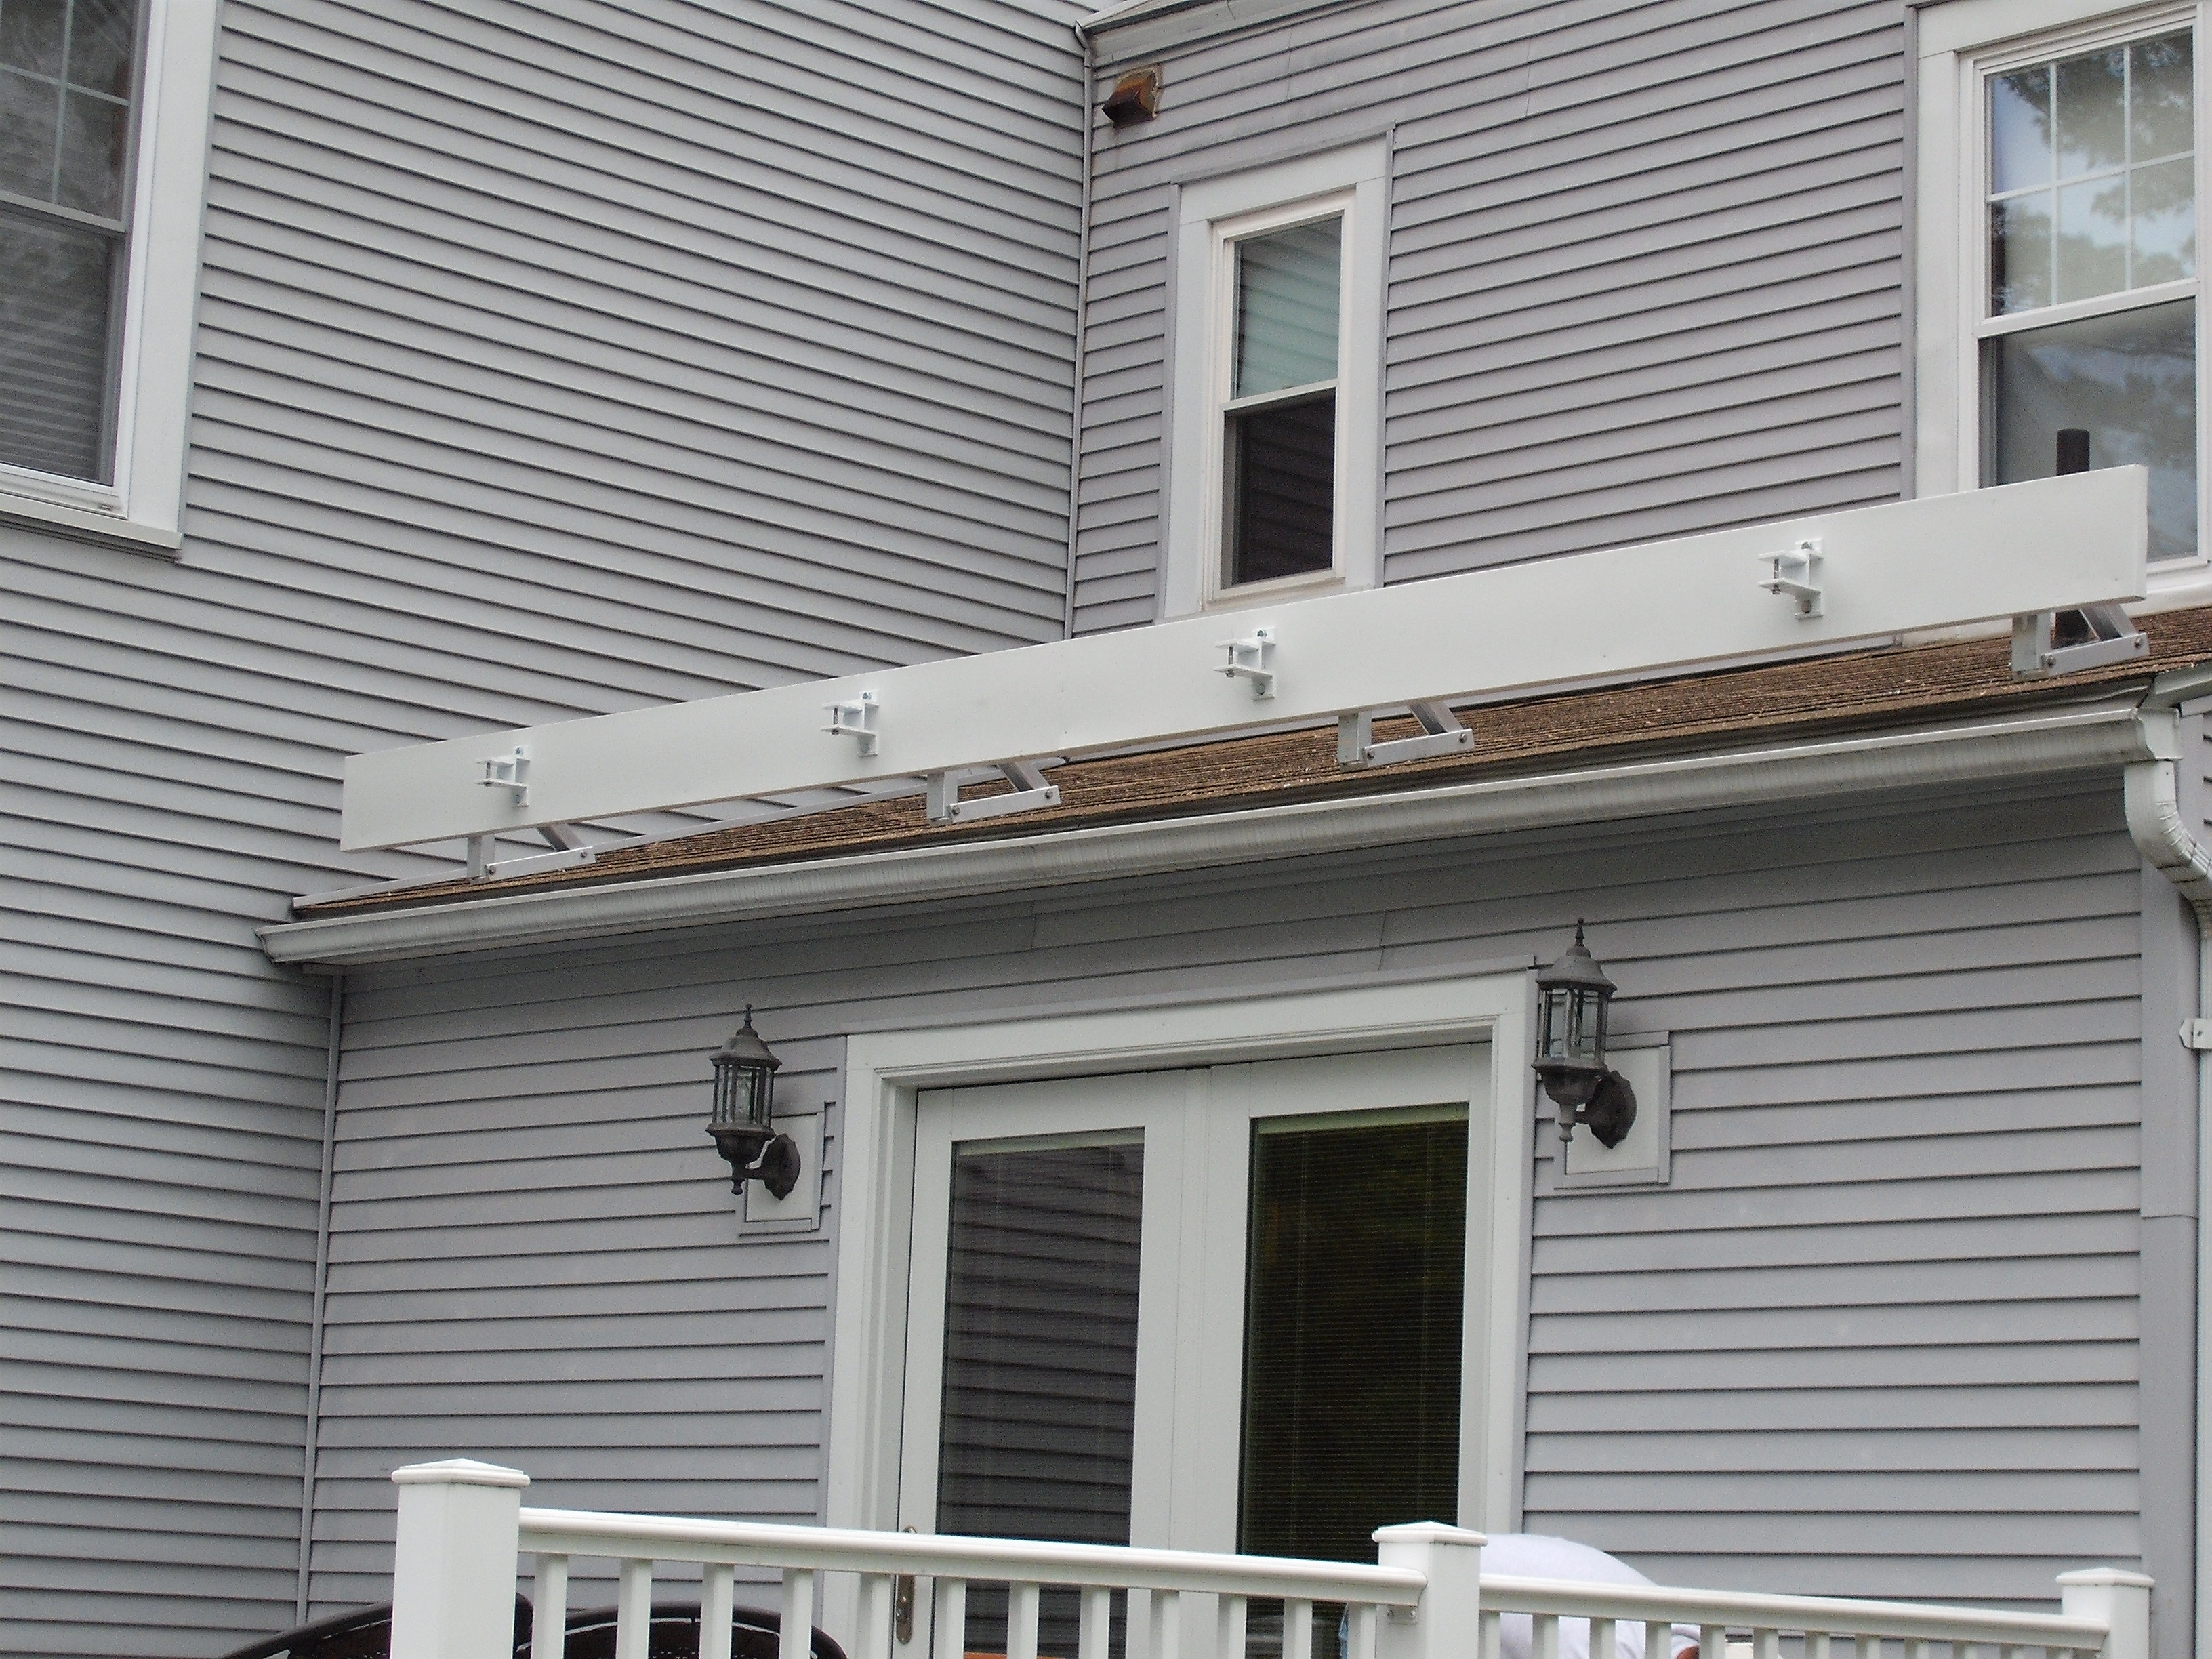 retractable-awning-roof-mount-application